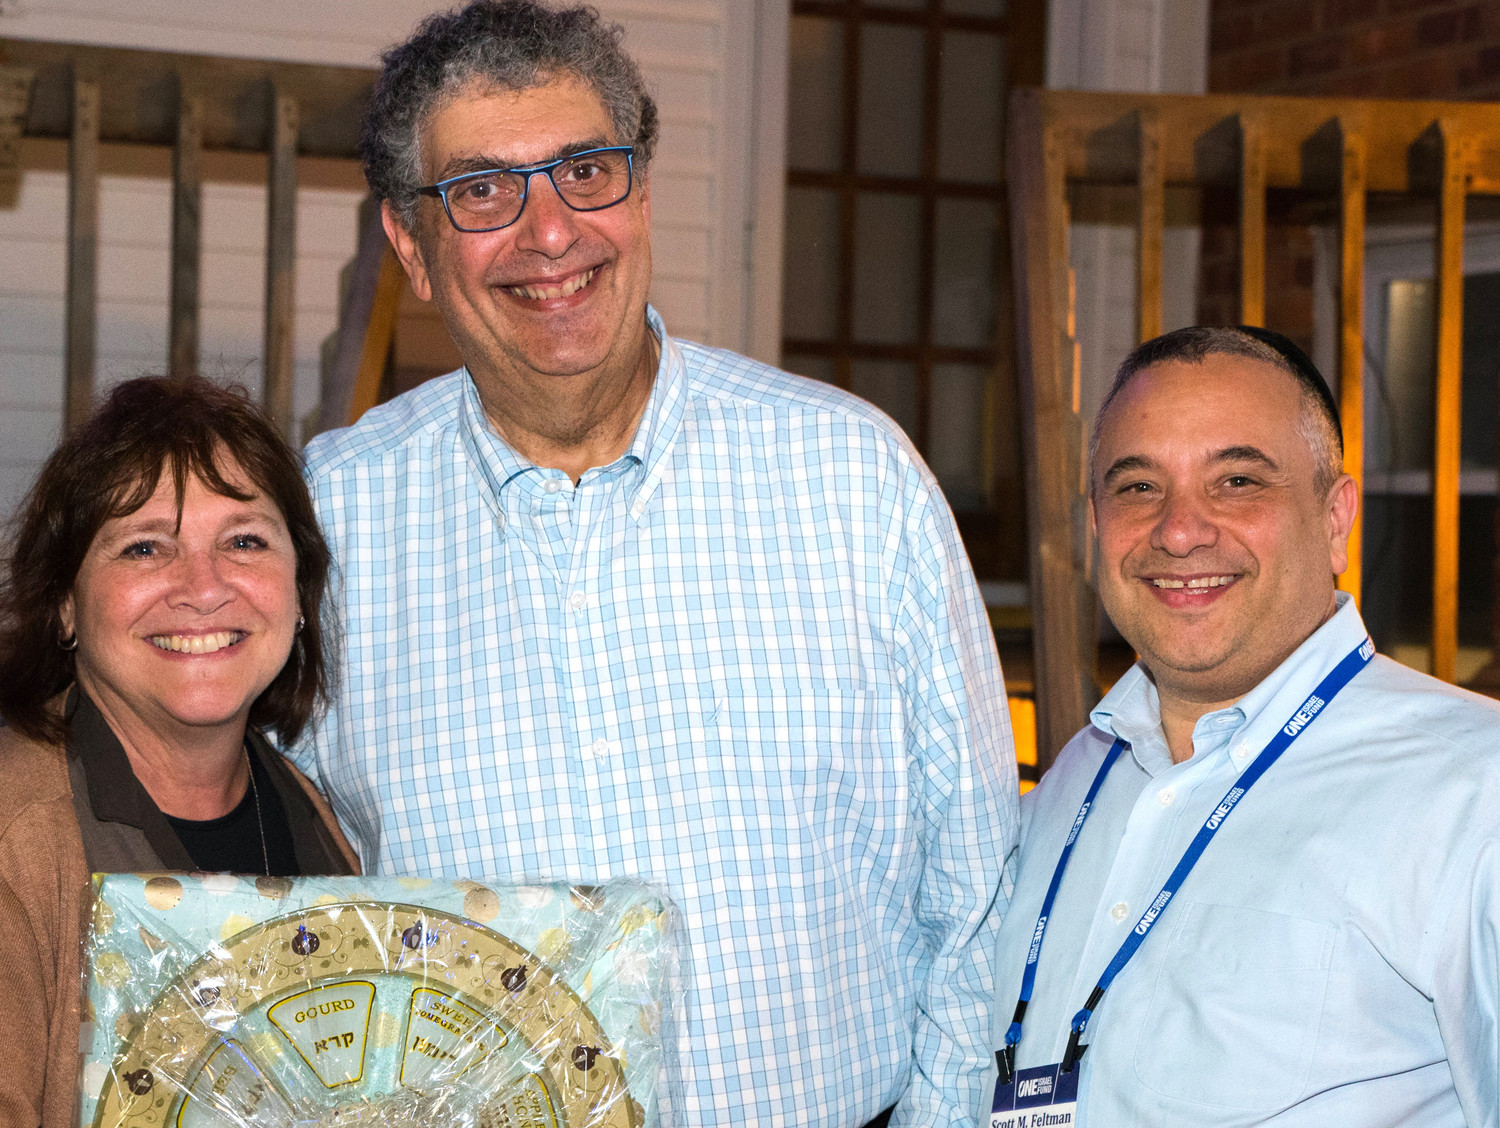 Hosts Sharon and Alan Shulman with Scott Feltman of the One Israel Fund.